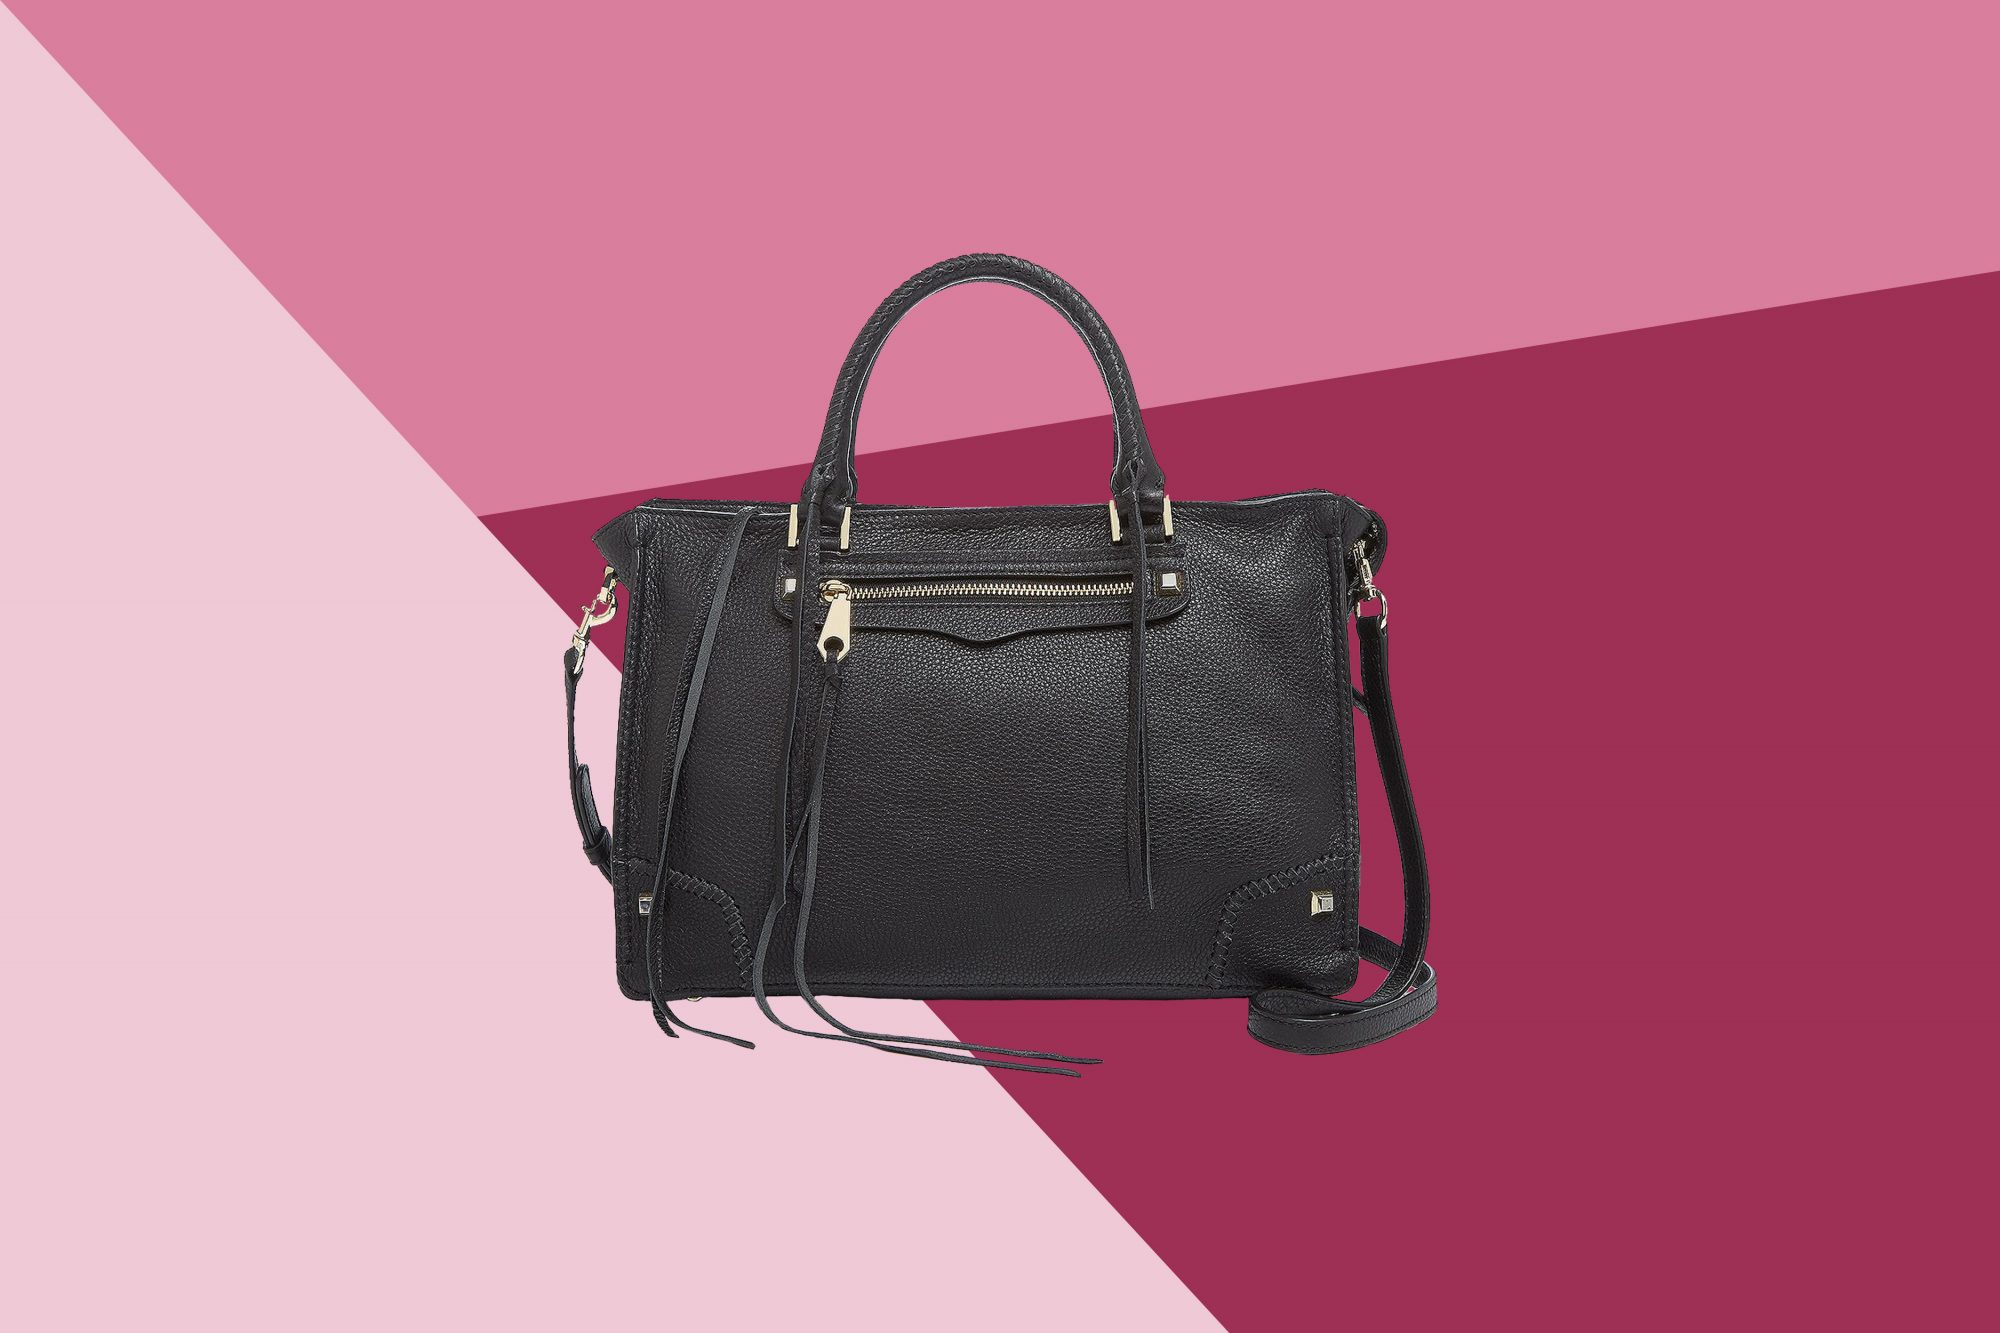 5c7a6791509e This Designer Bag Is One of Bloomingdale s Best-Sellers—And It s 40% Off  Right Now